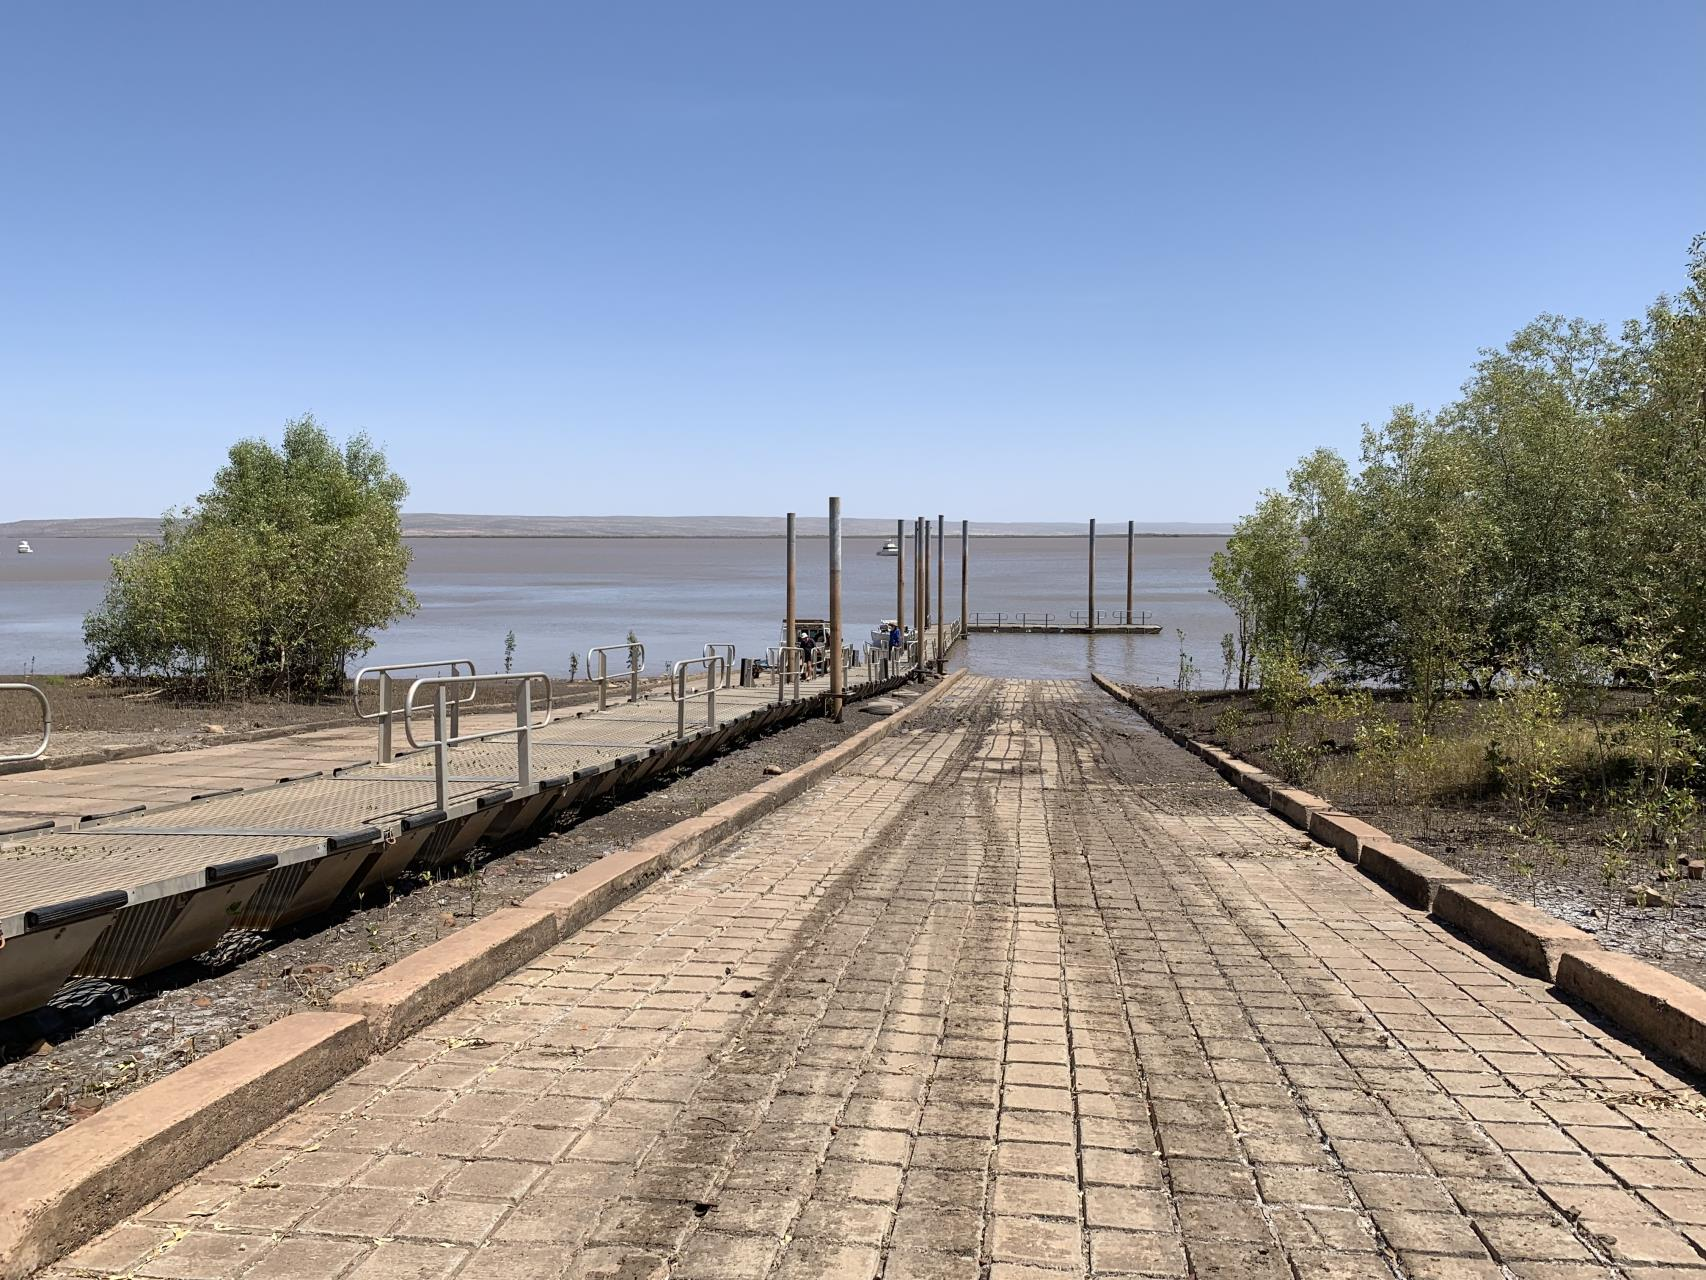 Wyndham Pontoon Jetty will be closed until further notice